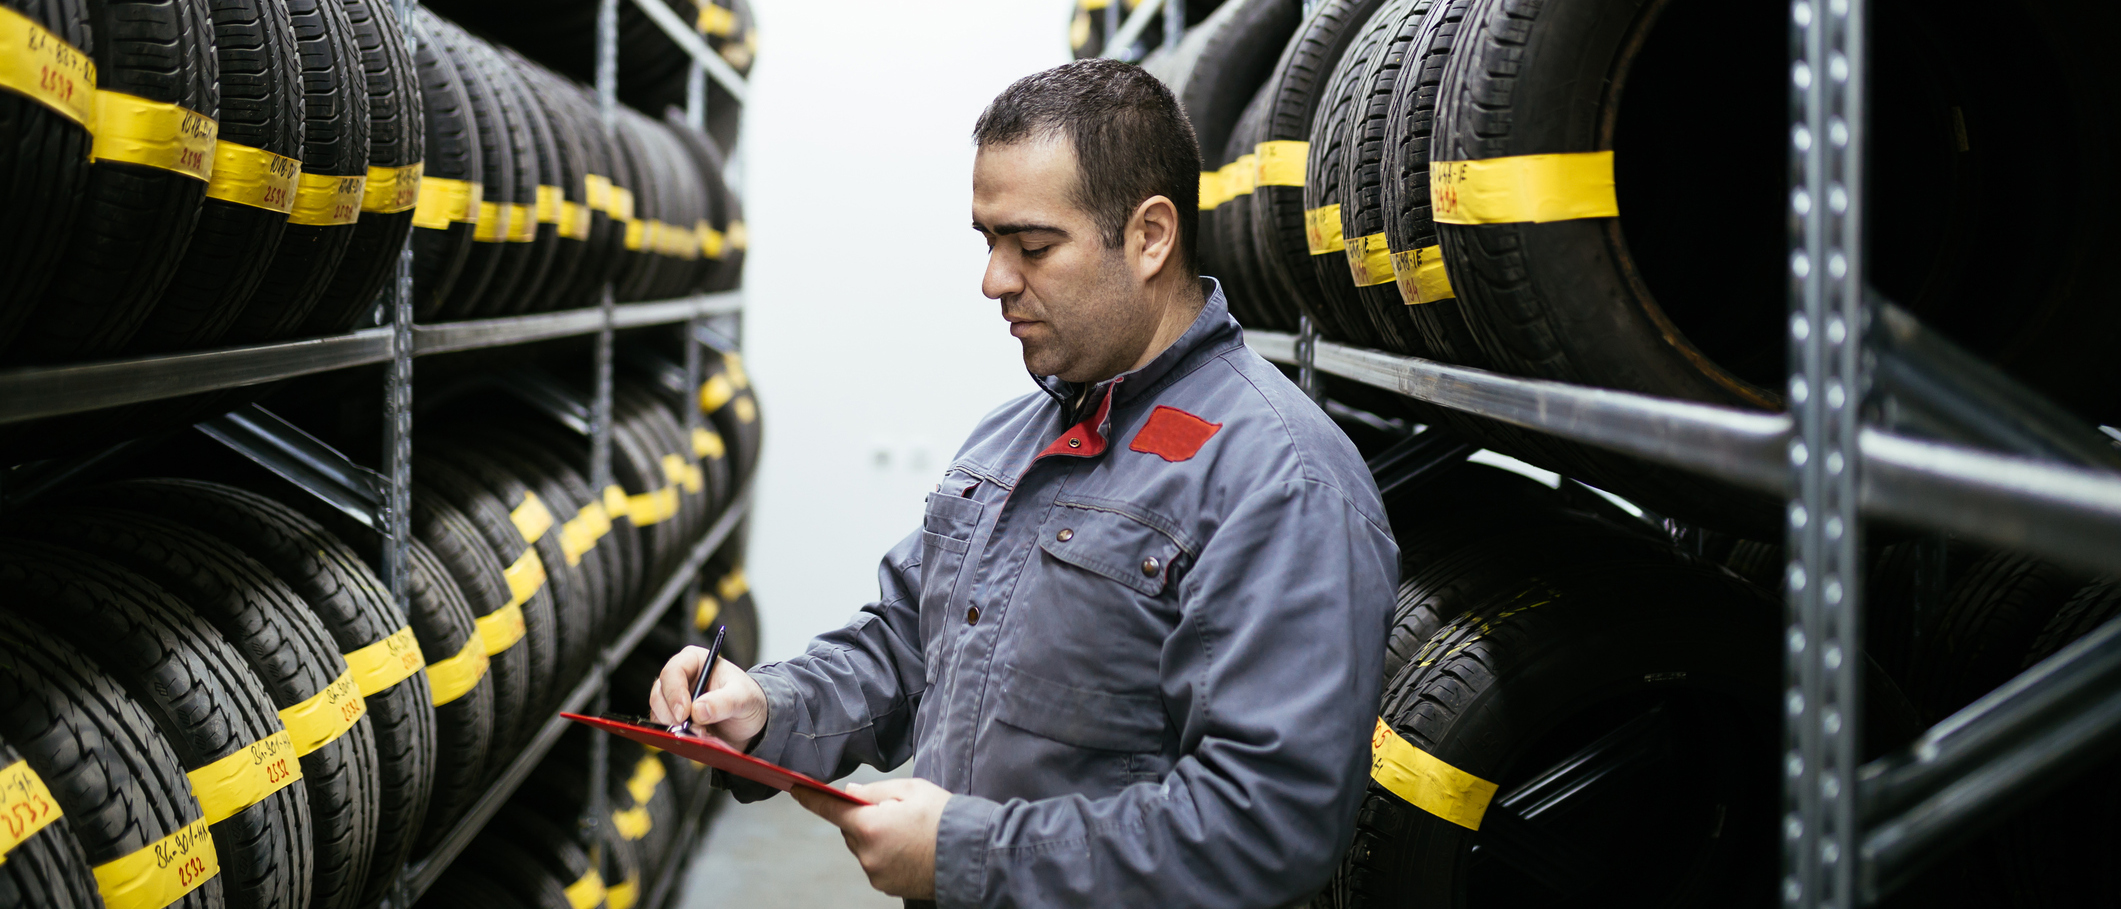 Car mechanic checking to see if tires are stored safely in warehouse